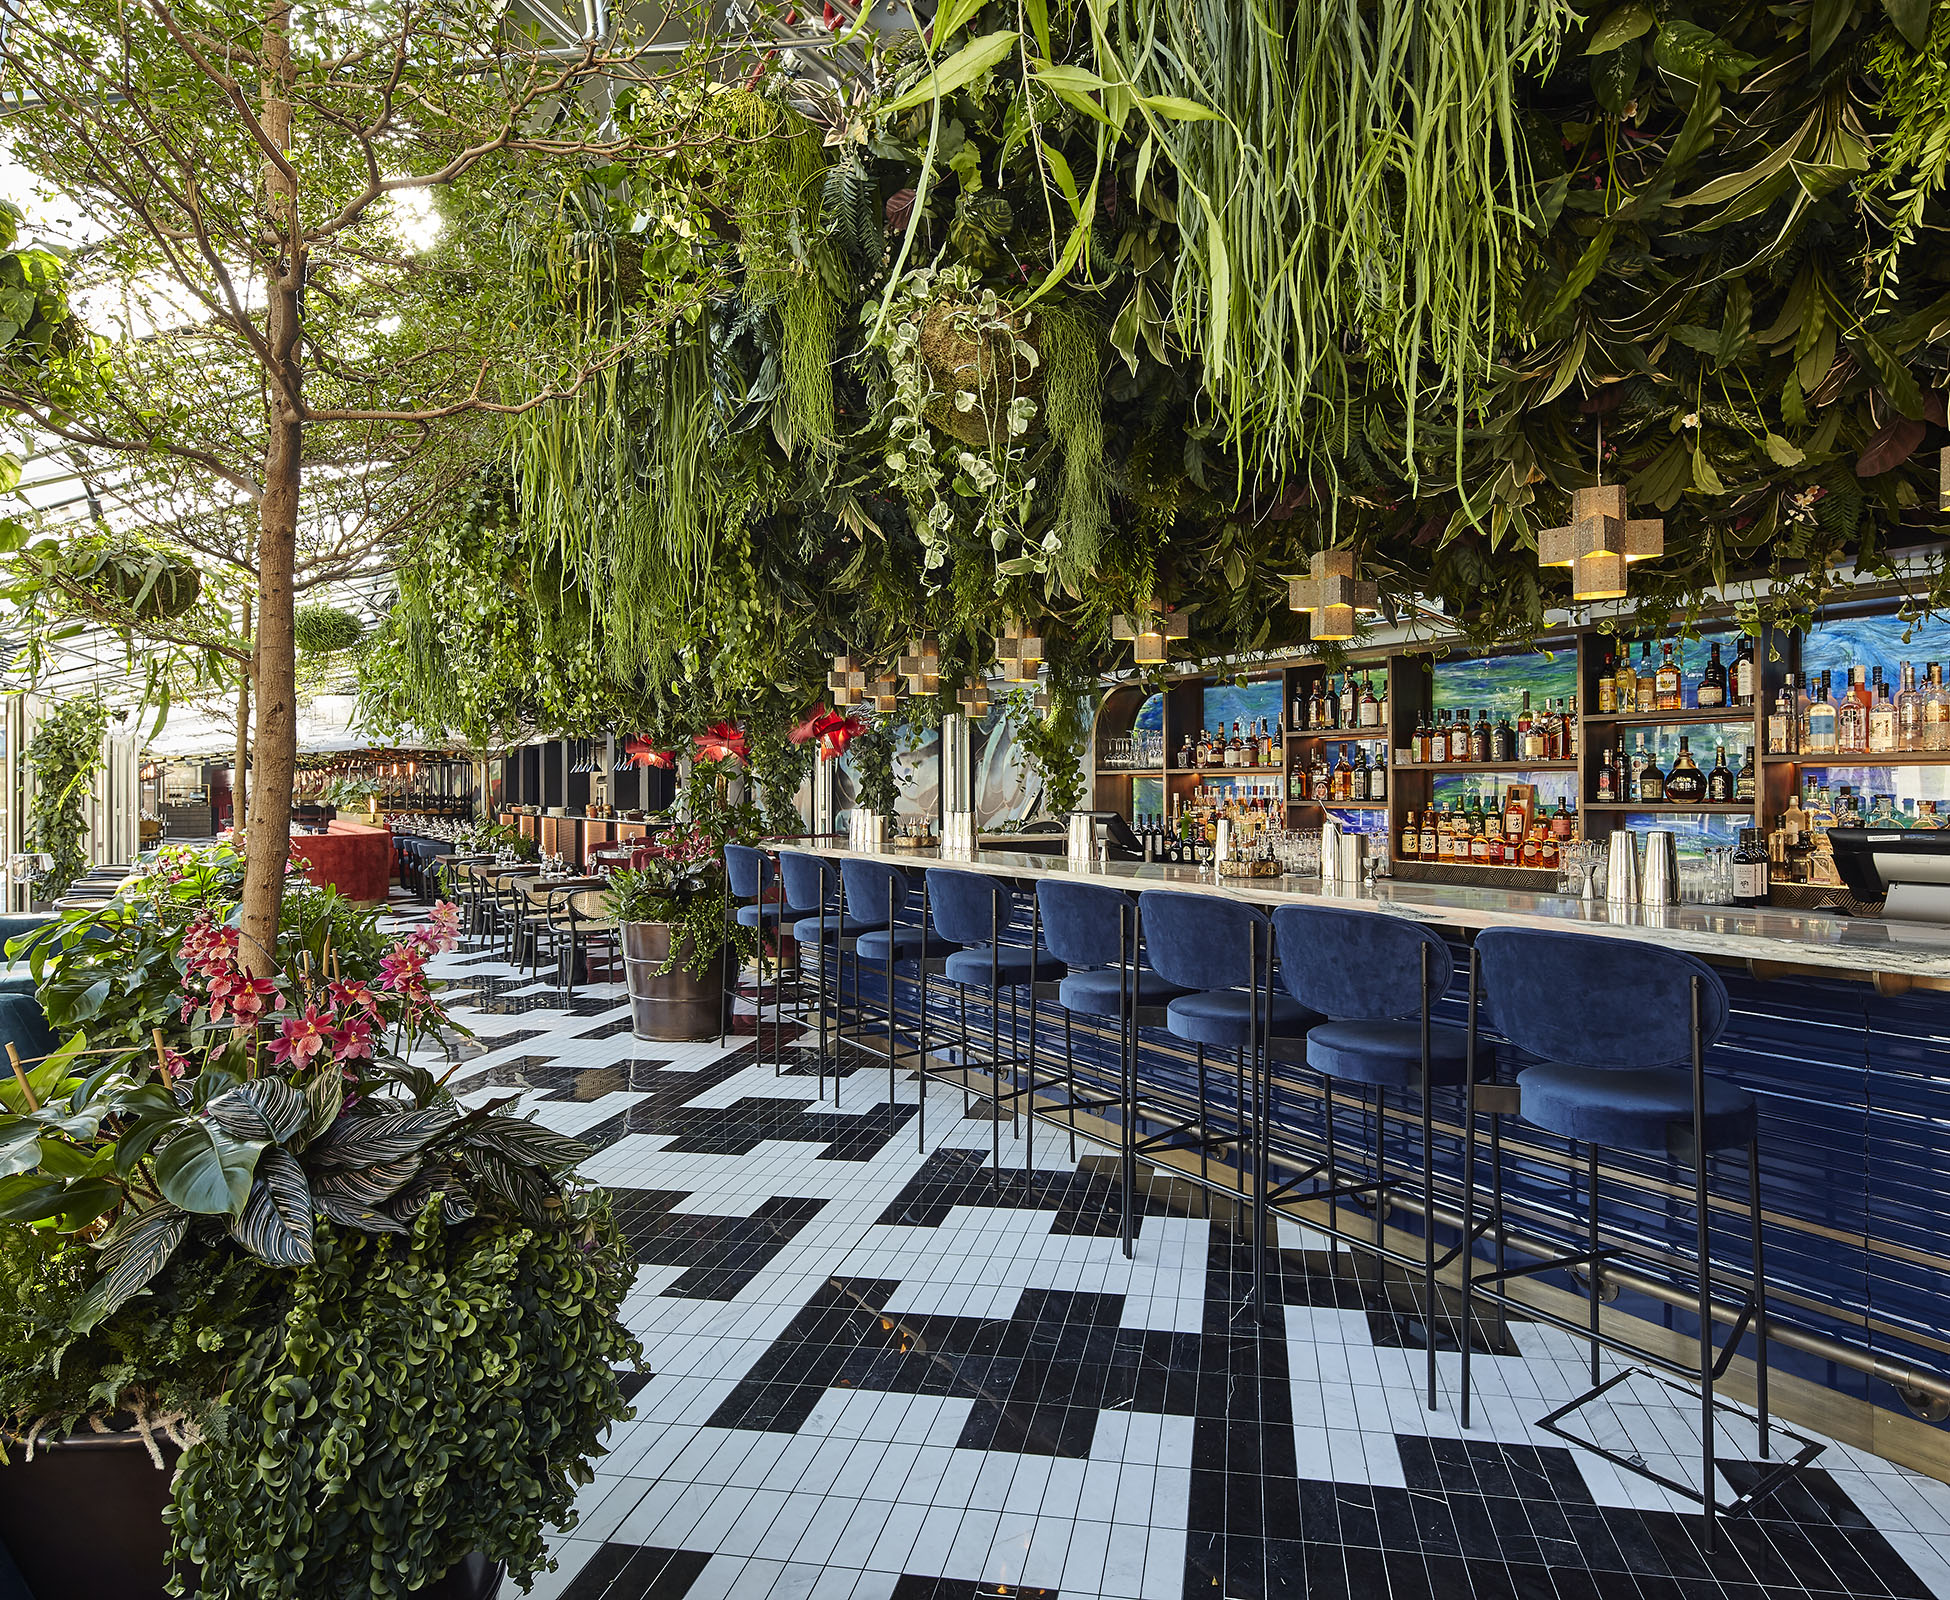 The majestic Bucida trees create a dramatic focal view as you enter Sushisamba Covent Garden, forming an avenue through the dining area and cocktail bar.